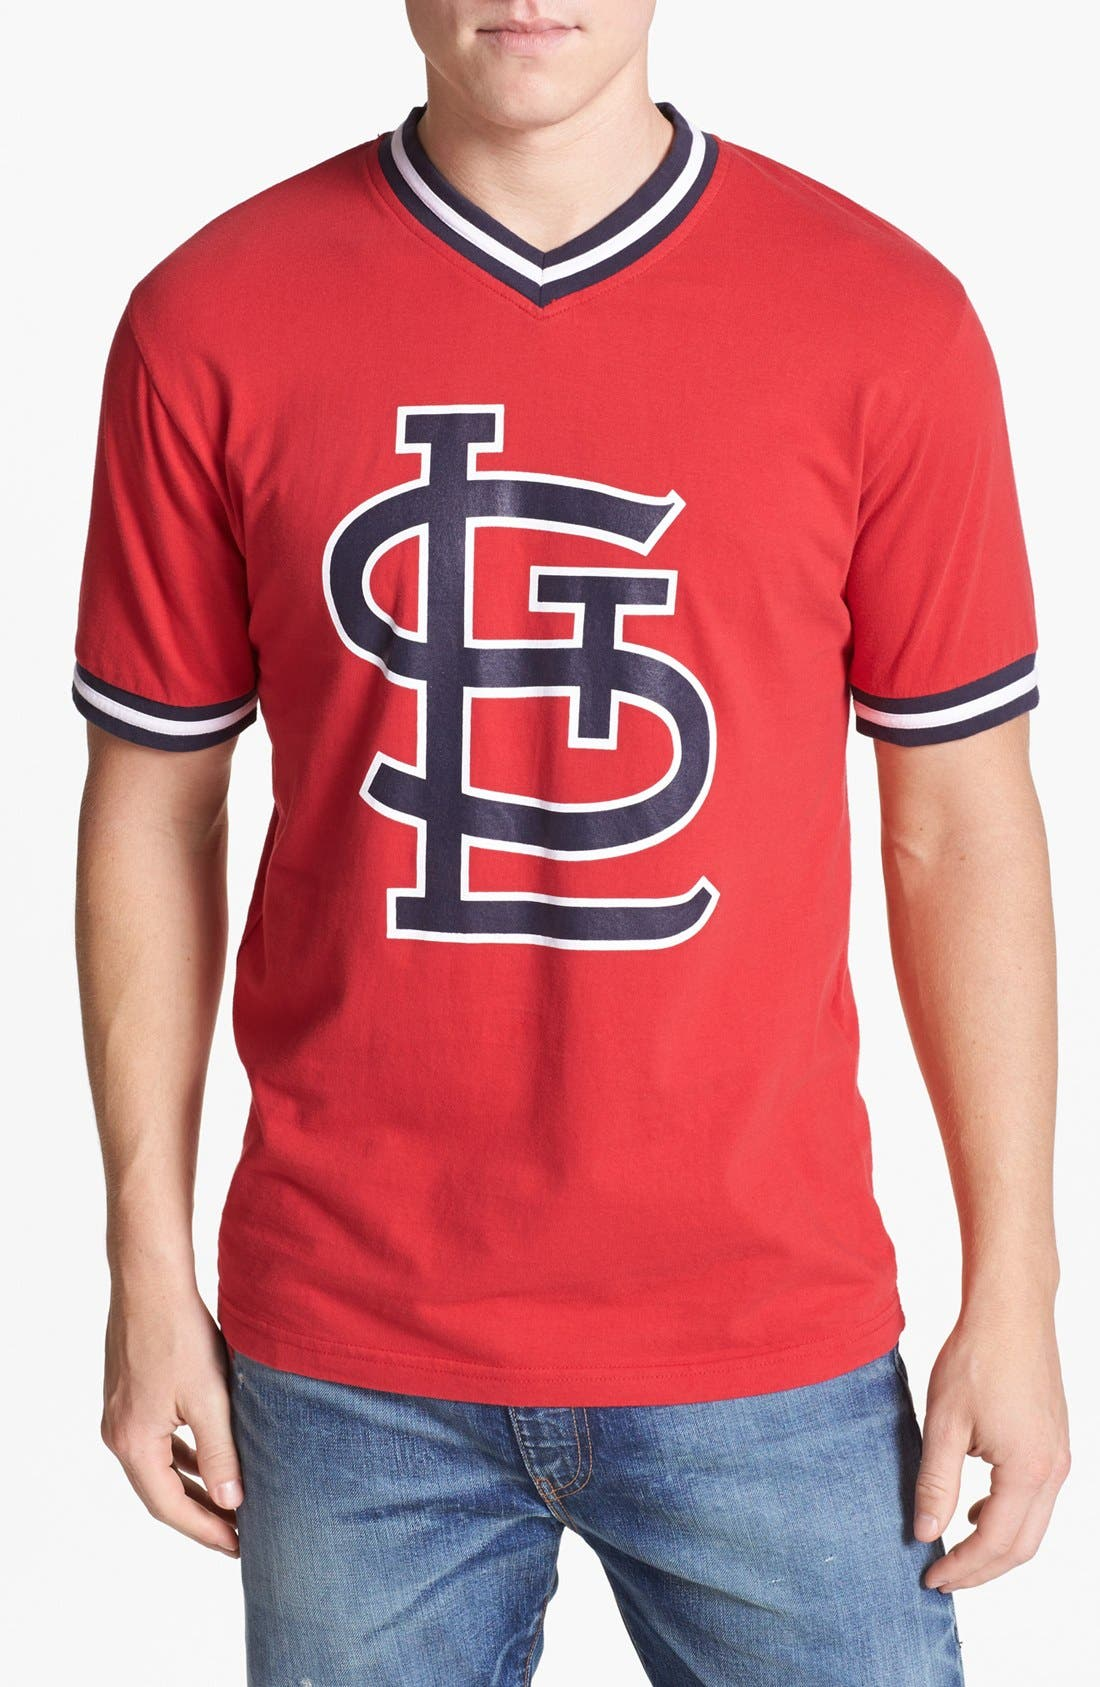 Alternate Image 1 Selected - Wright & Ditson 'St. Louis Cardinals' V-Neck T-Shirt